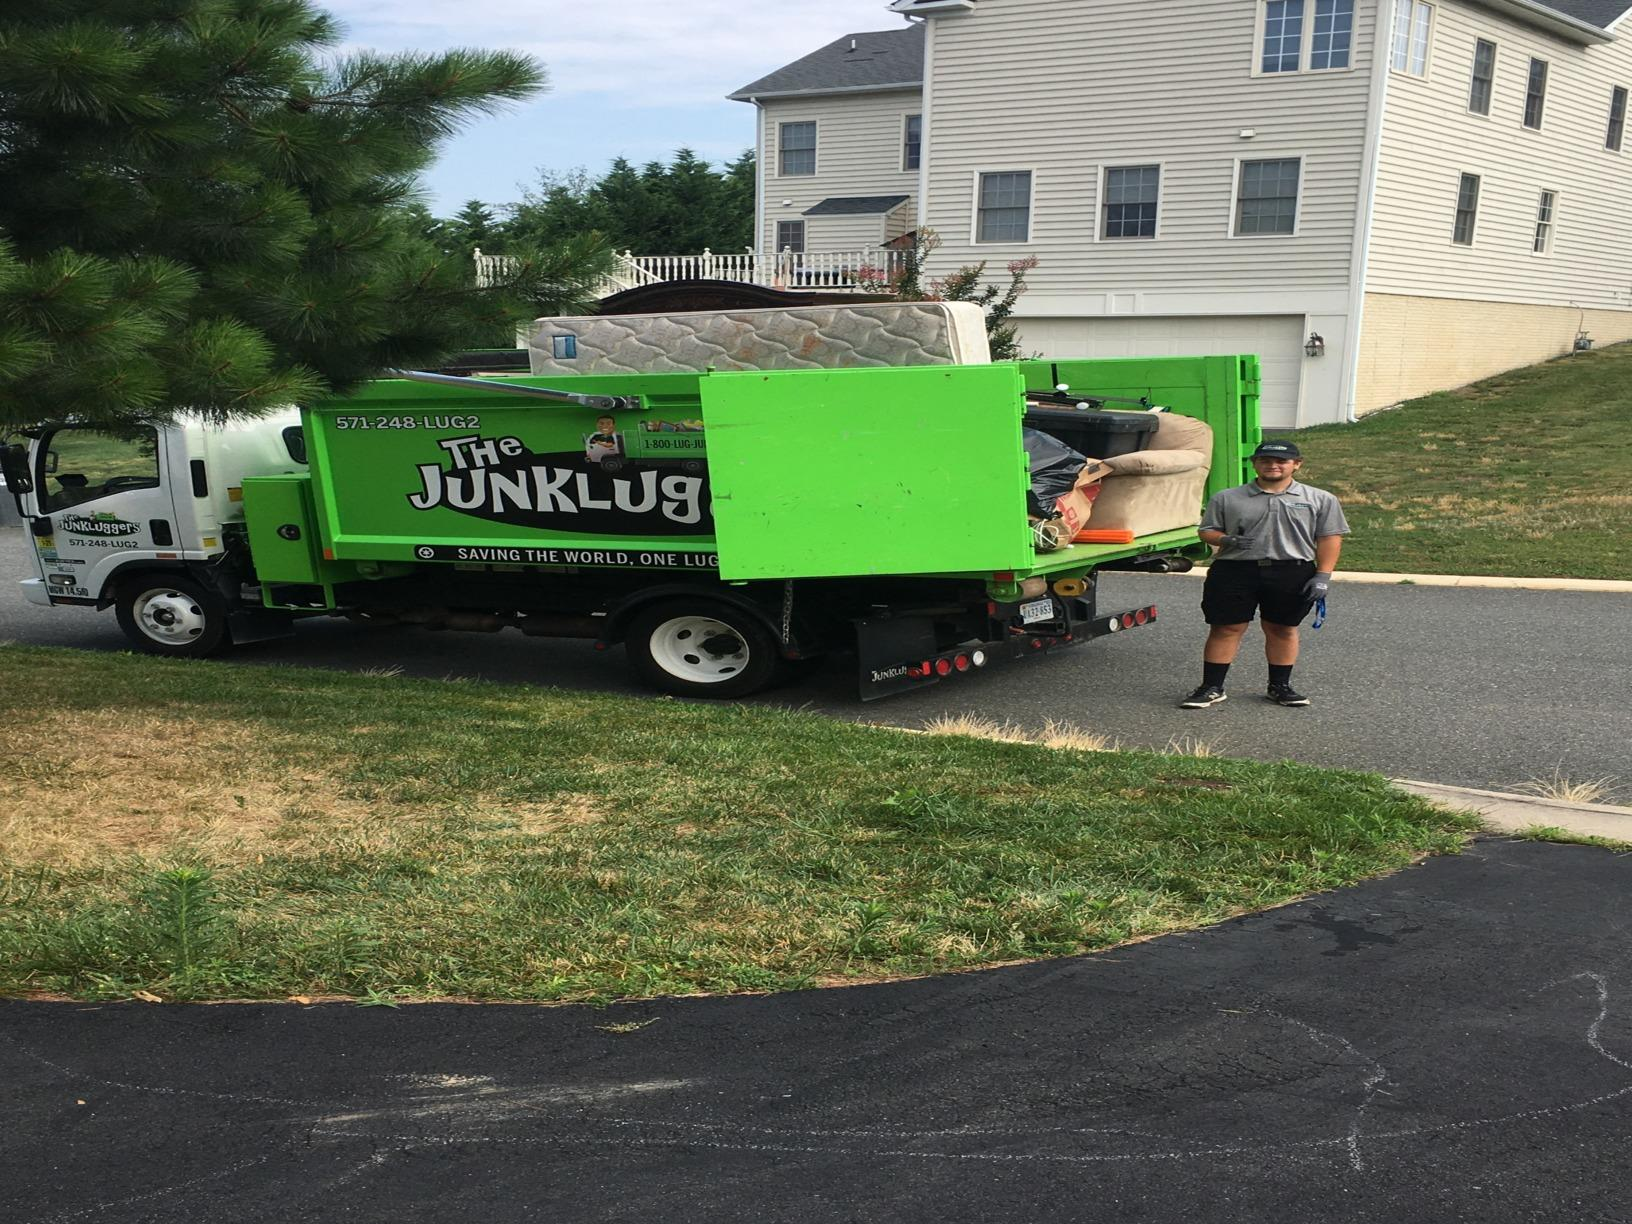 Curbside junk removal in Woodbridge, VA - After Photo